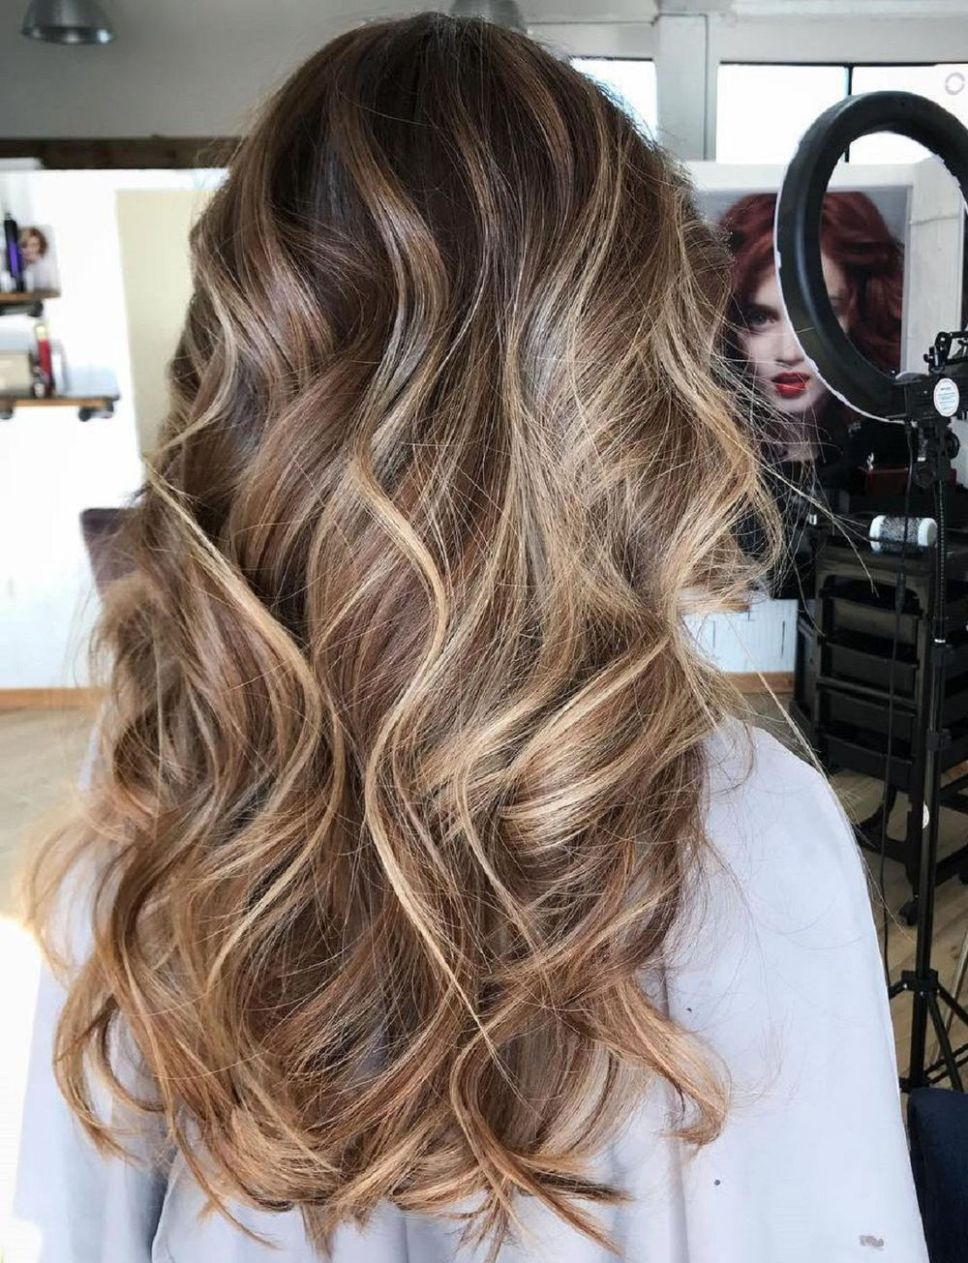 70 flattering balayage hair color ideas for 2019 hair. Black Bedroom Furniture Sets. Home Design Ideas